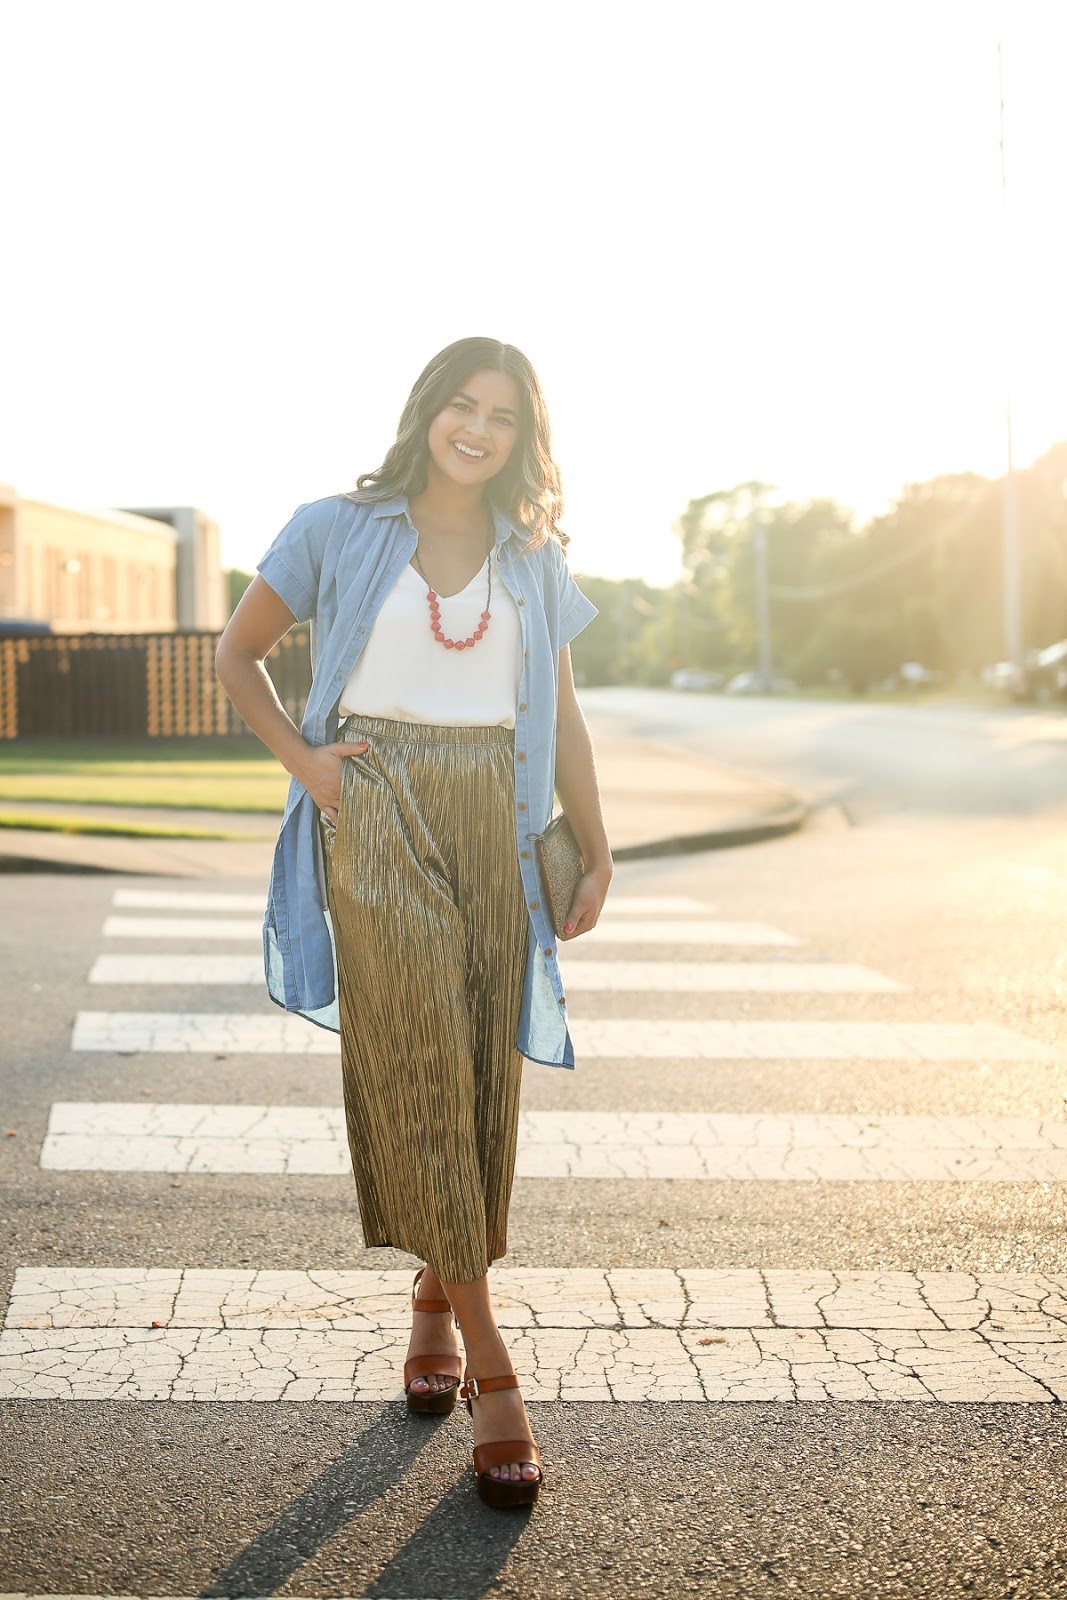 Priya the Blog, Nashville fashion blog, Nashville fashion blogger, Nashville style blog, Nashville style blogger, metallic pants, gold pants, how to wear metallic pants, Topshop pleated gold trousers for Summer, Summer outfit with metallic pants, casual outfit with metallic pants, Madewell chambray dress, Target clog sandals